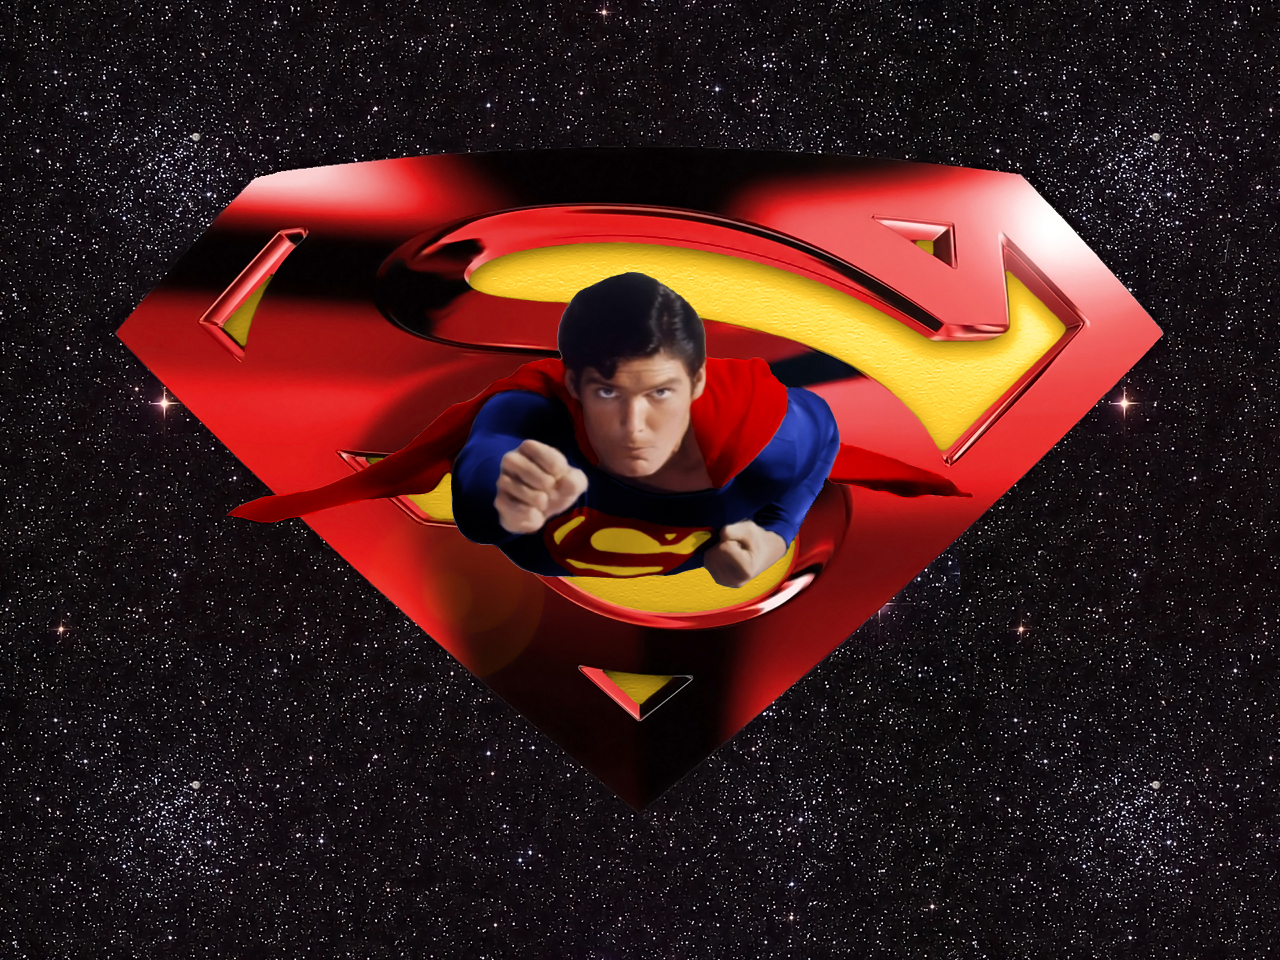 Christopher Reeve Superman wp